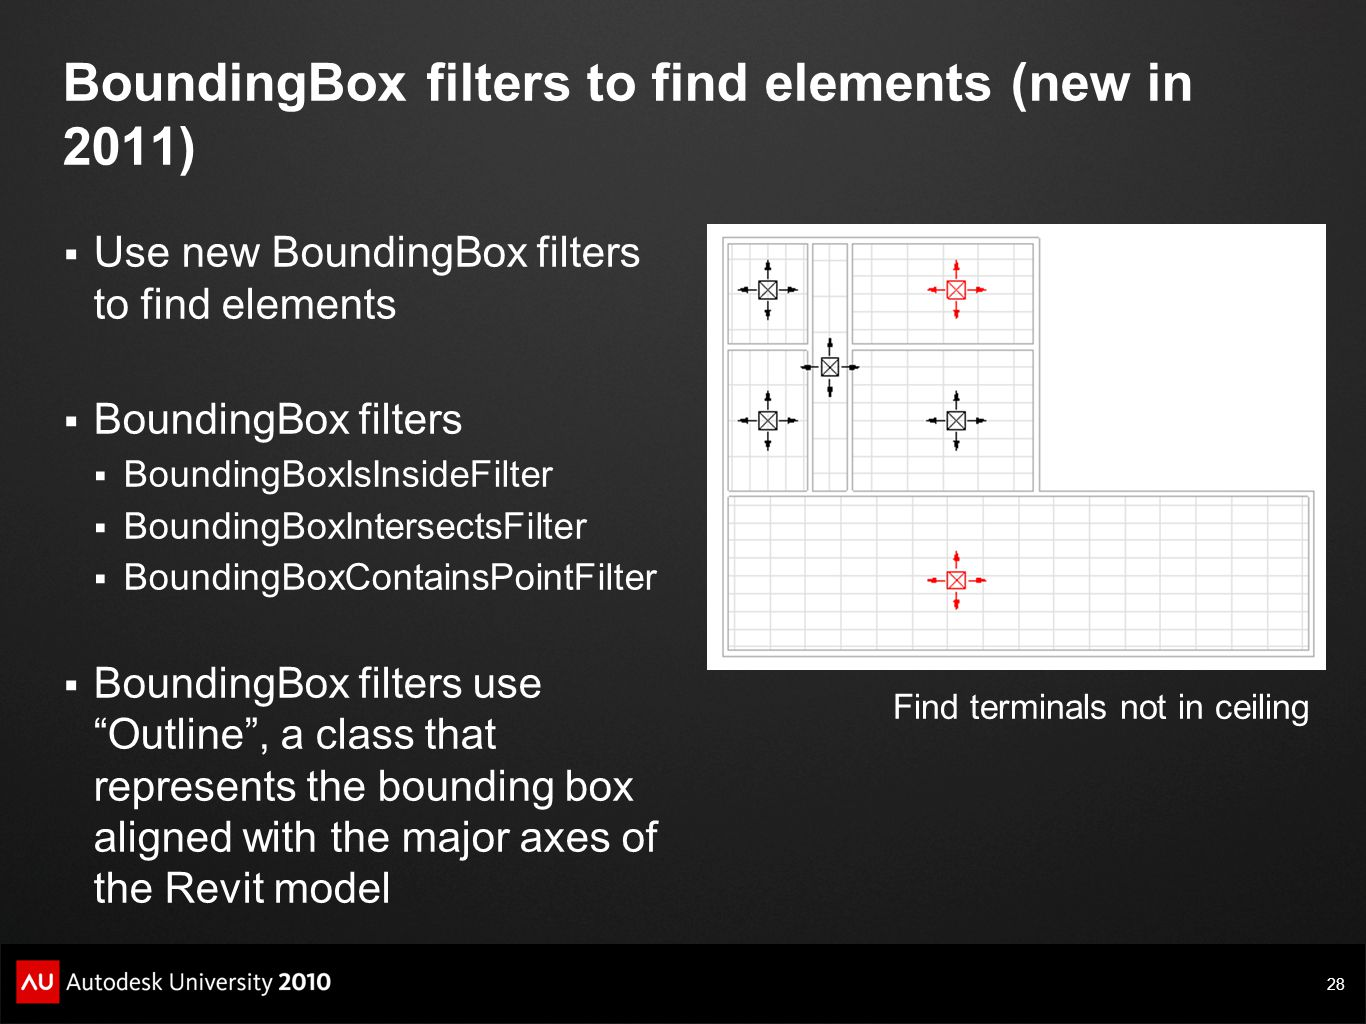 BoundingBox filters to find elements (new in 2011)